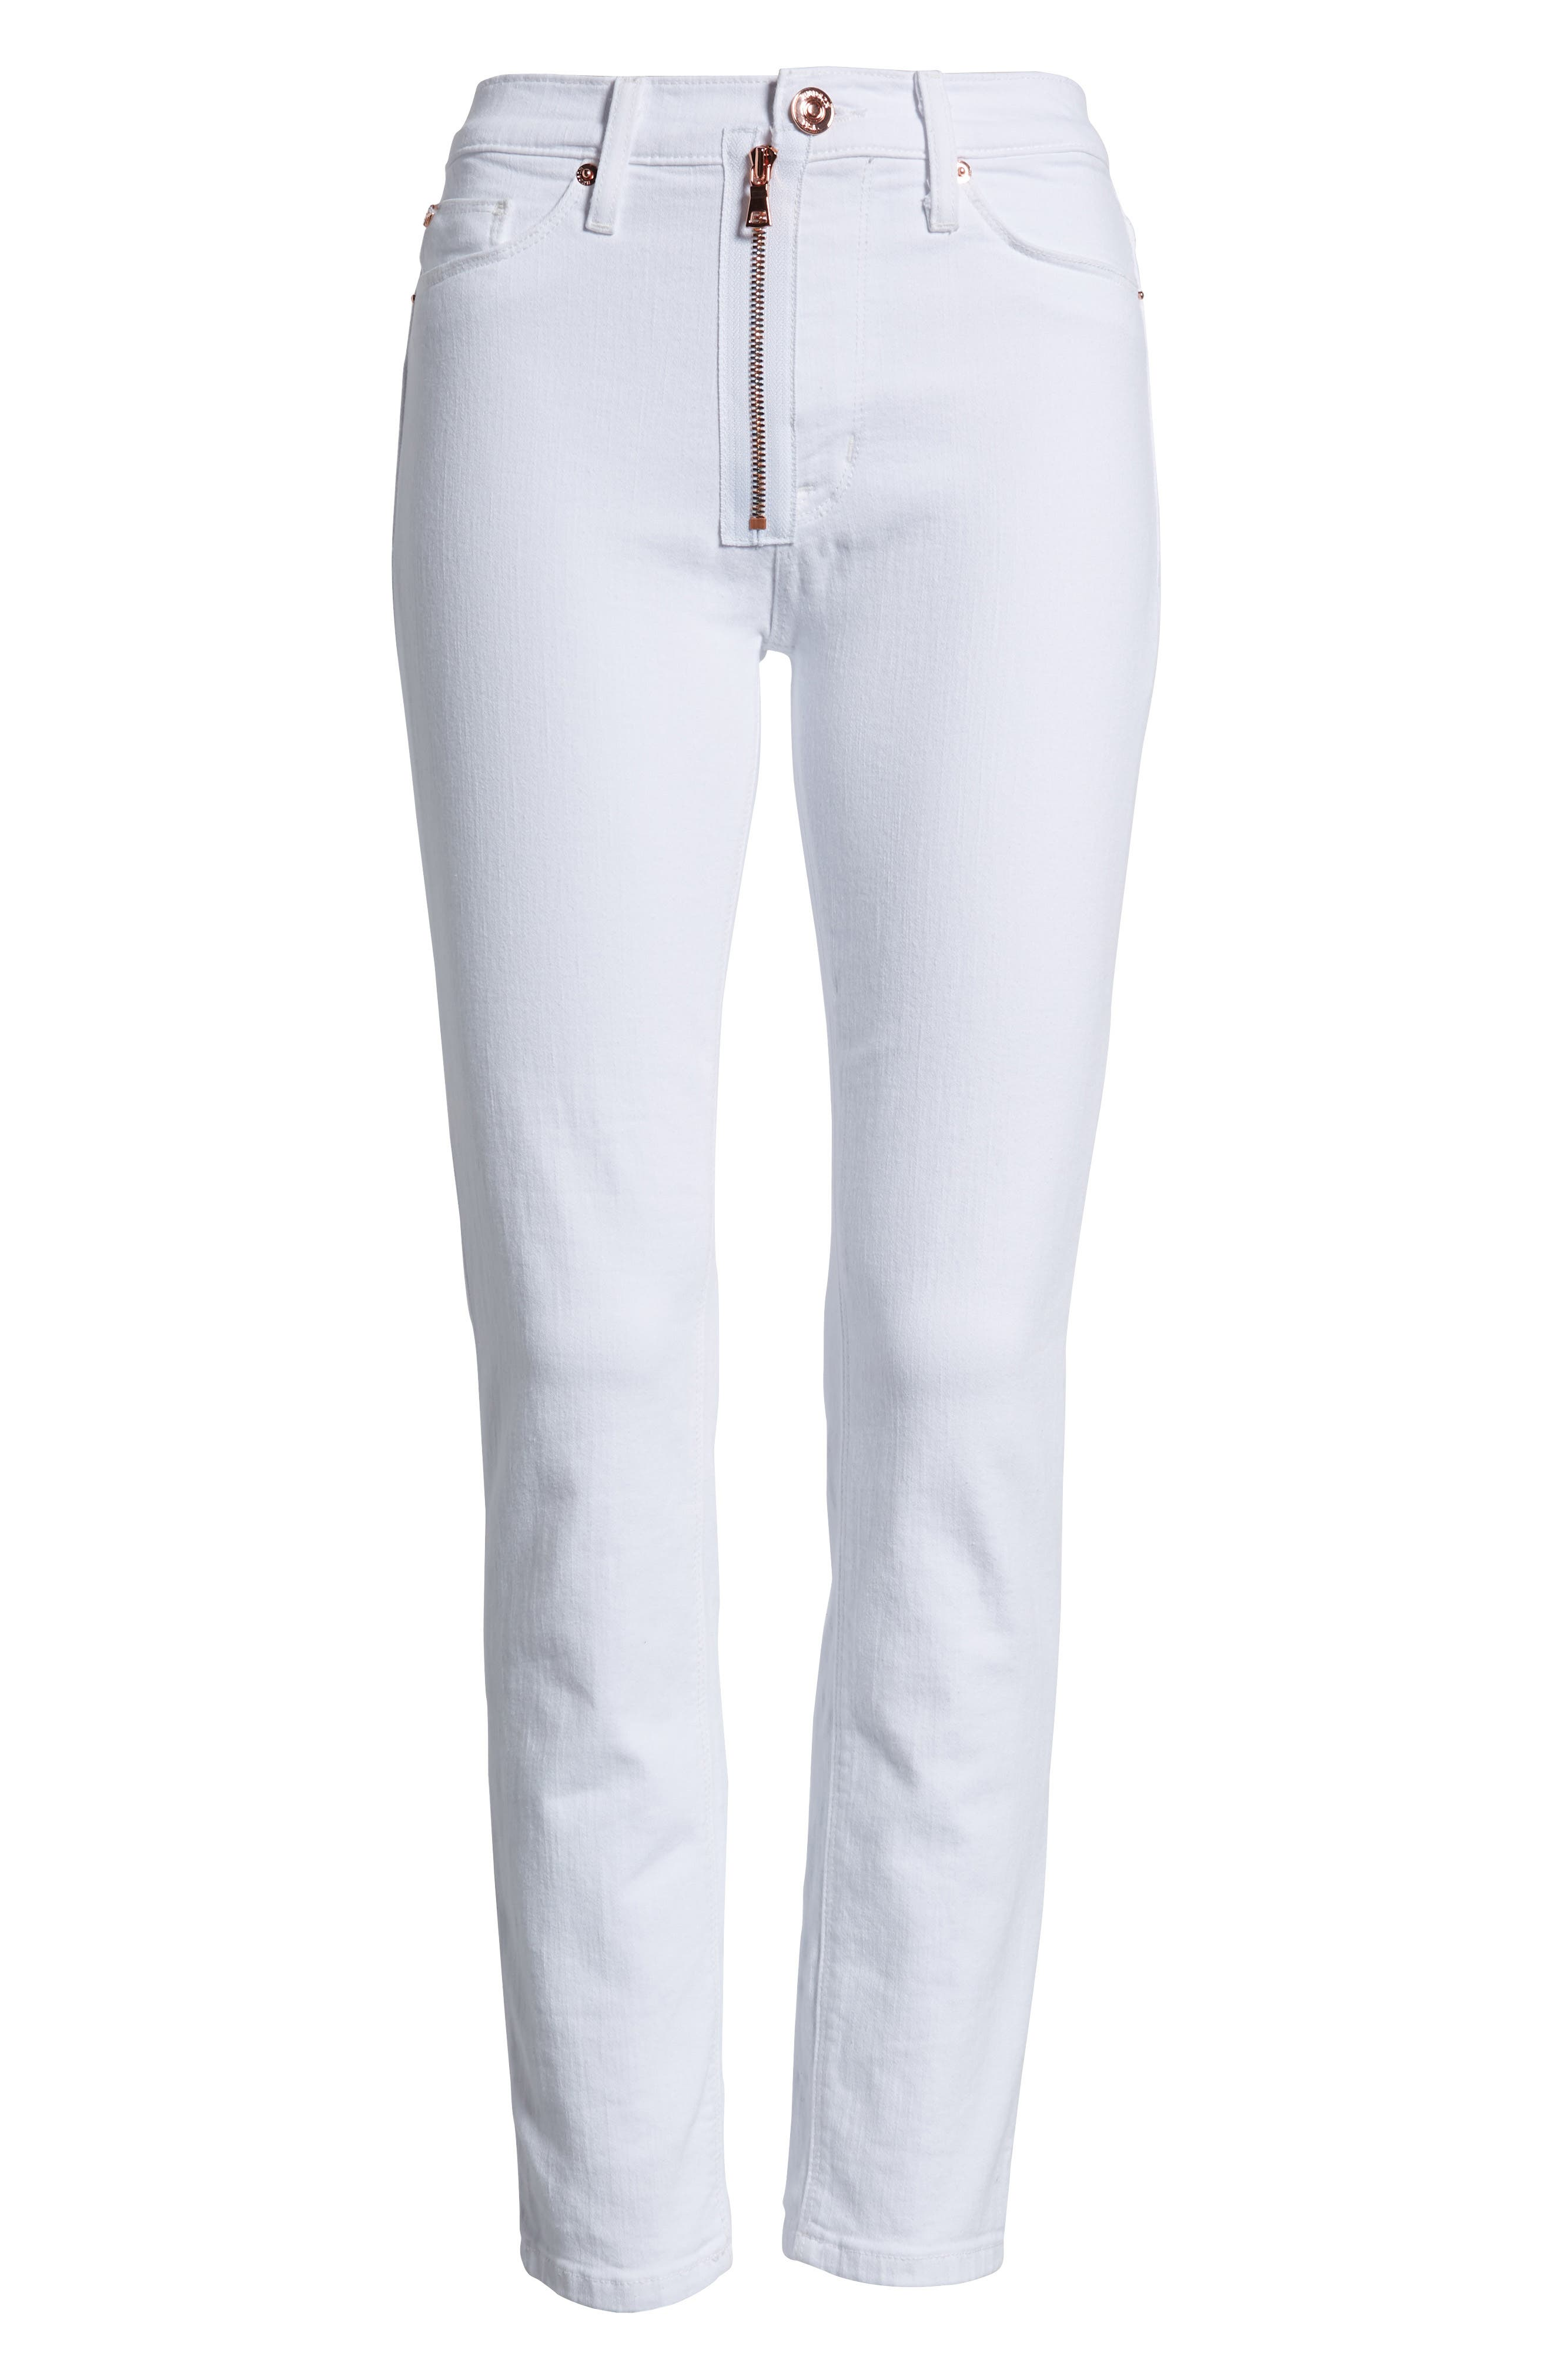 Barbara Exposed Zip High Waist Jeans,                             Alternate thumbnail 7, color,                             Optical White